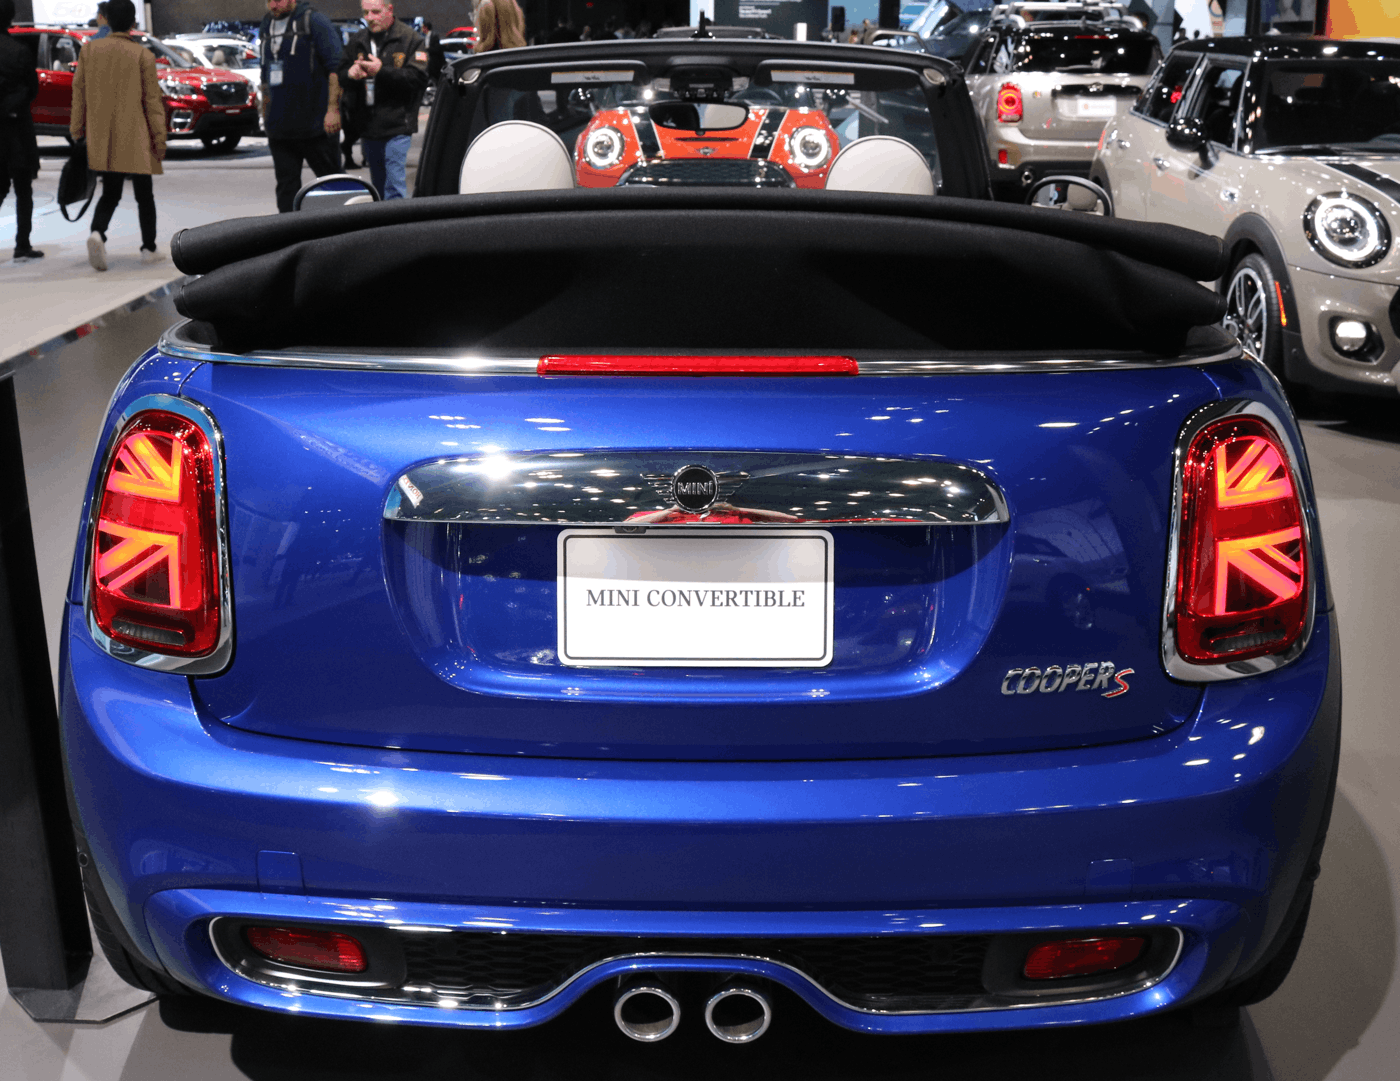 2019 MINI Cooper Convertible Rear NY Auto Show